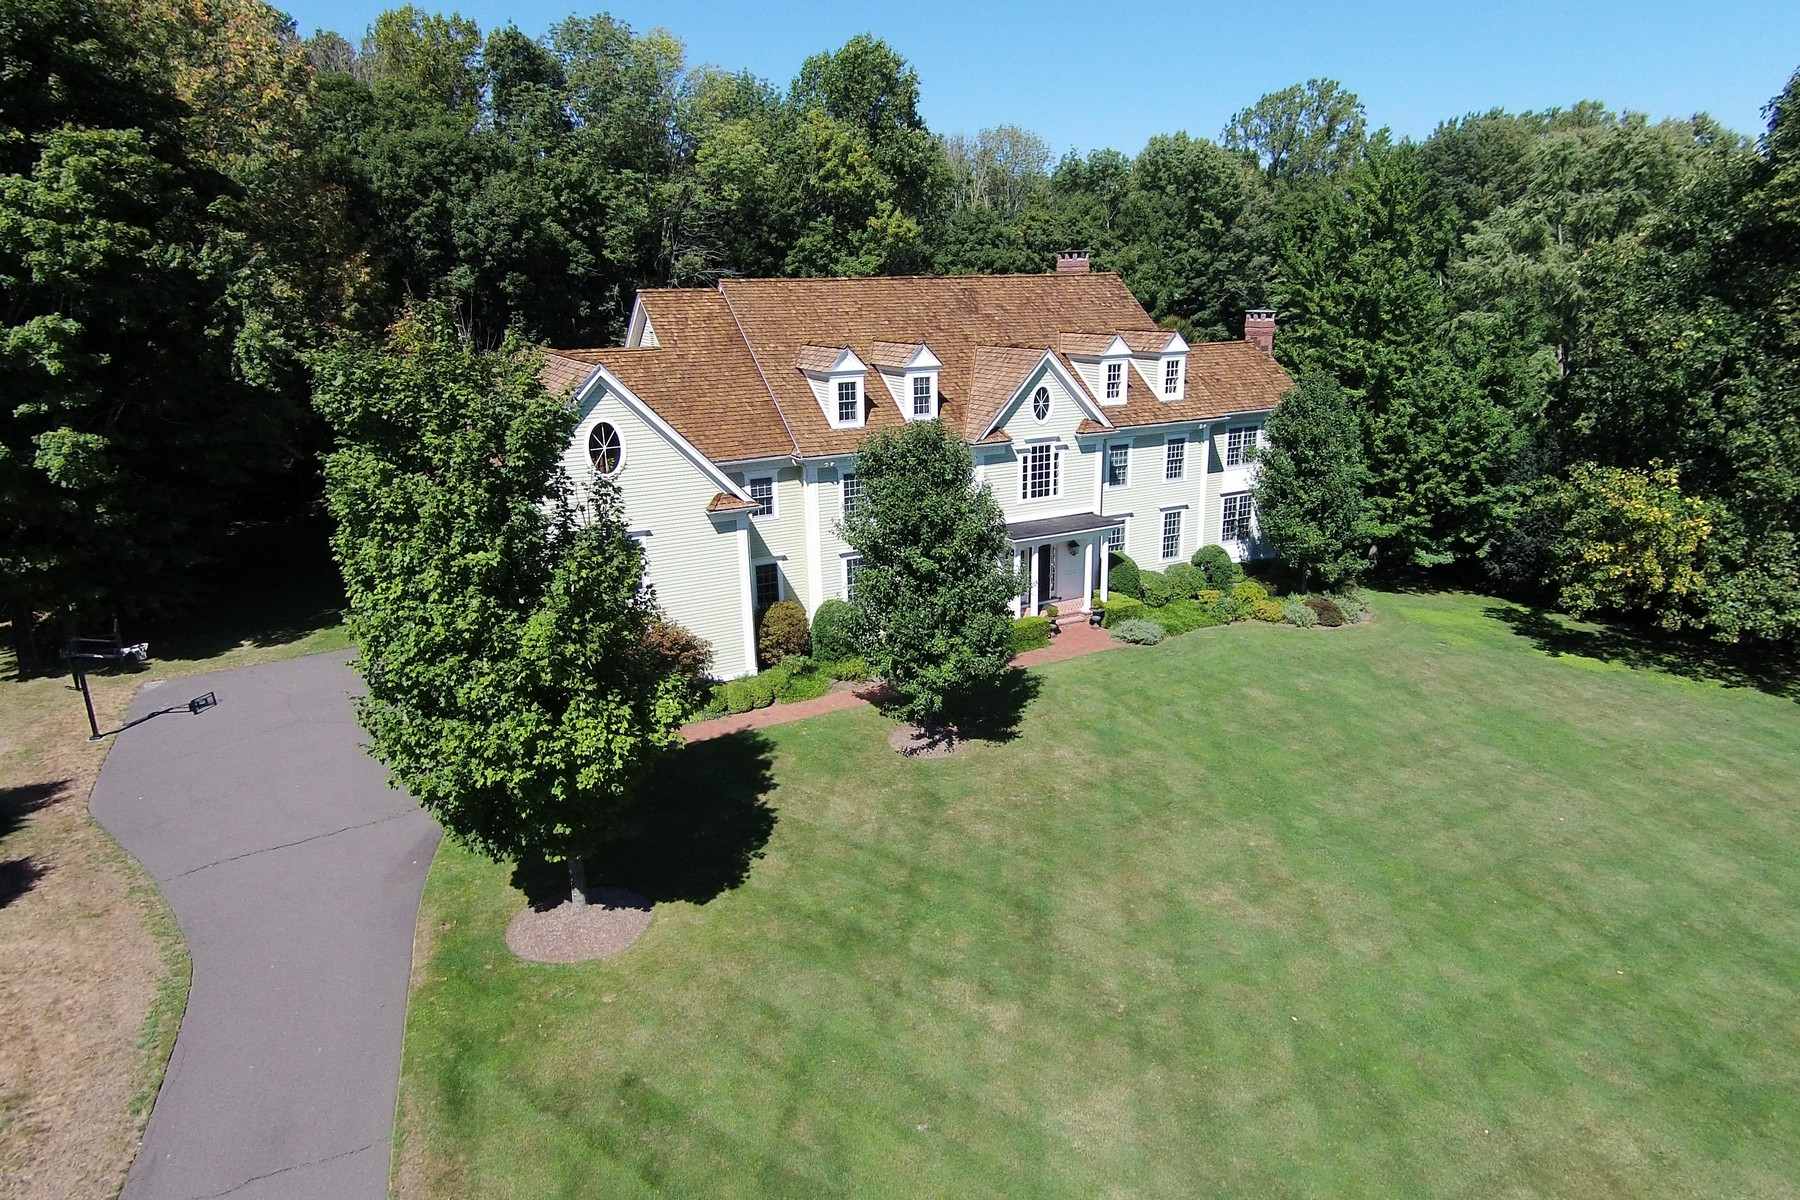 Single Family Home for Sale at BURRWOOD COMMON 70 Burrwood Common Fairfield, Connecticut 06824 United States